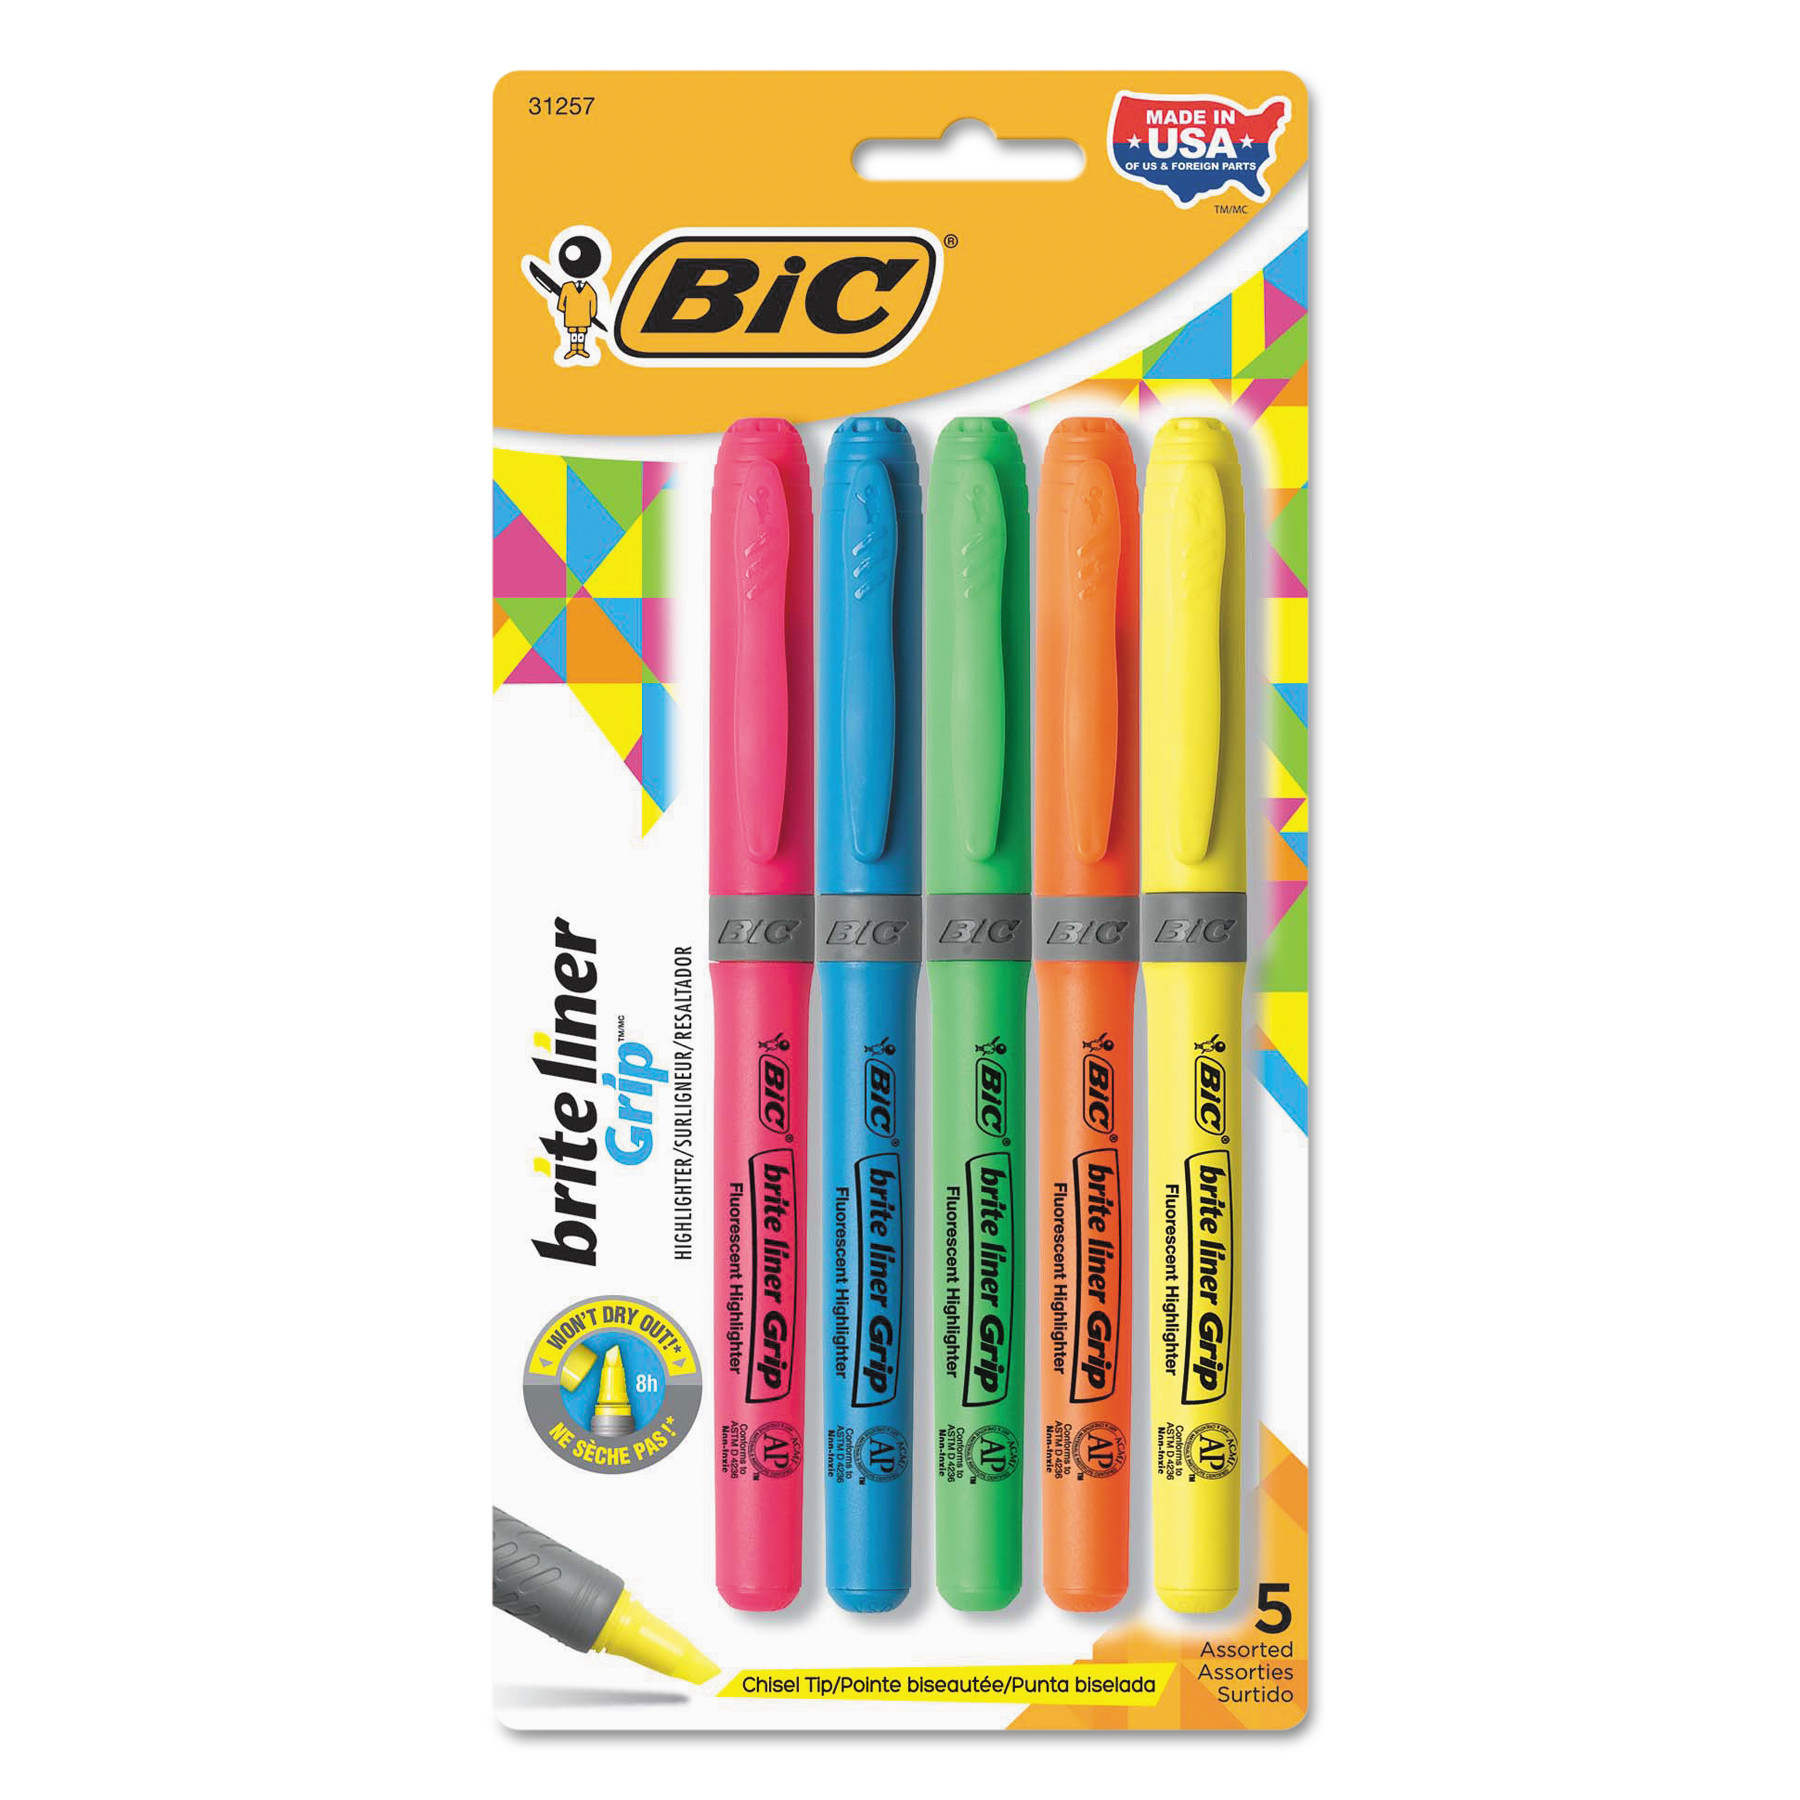 BIC Brite Liner Grip Highlighter, Assorted Fluorescent Colors, Set of 5